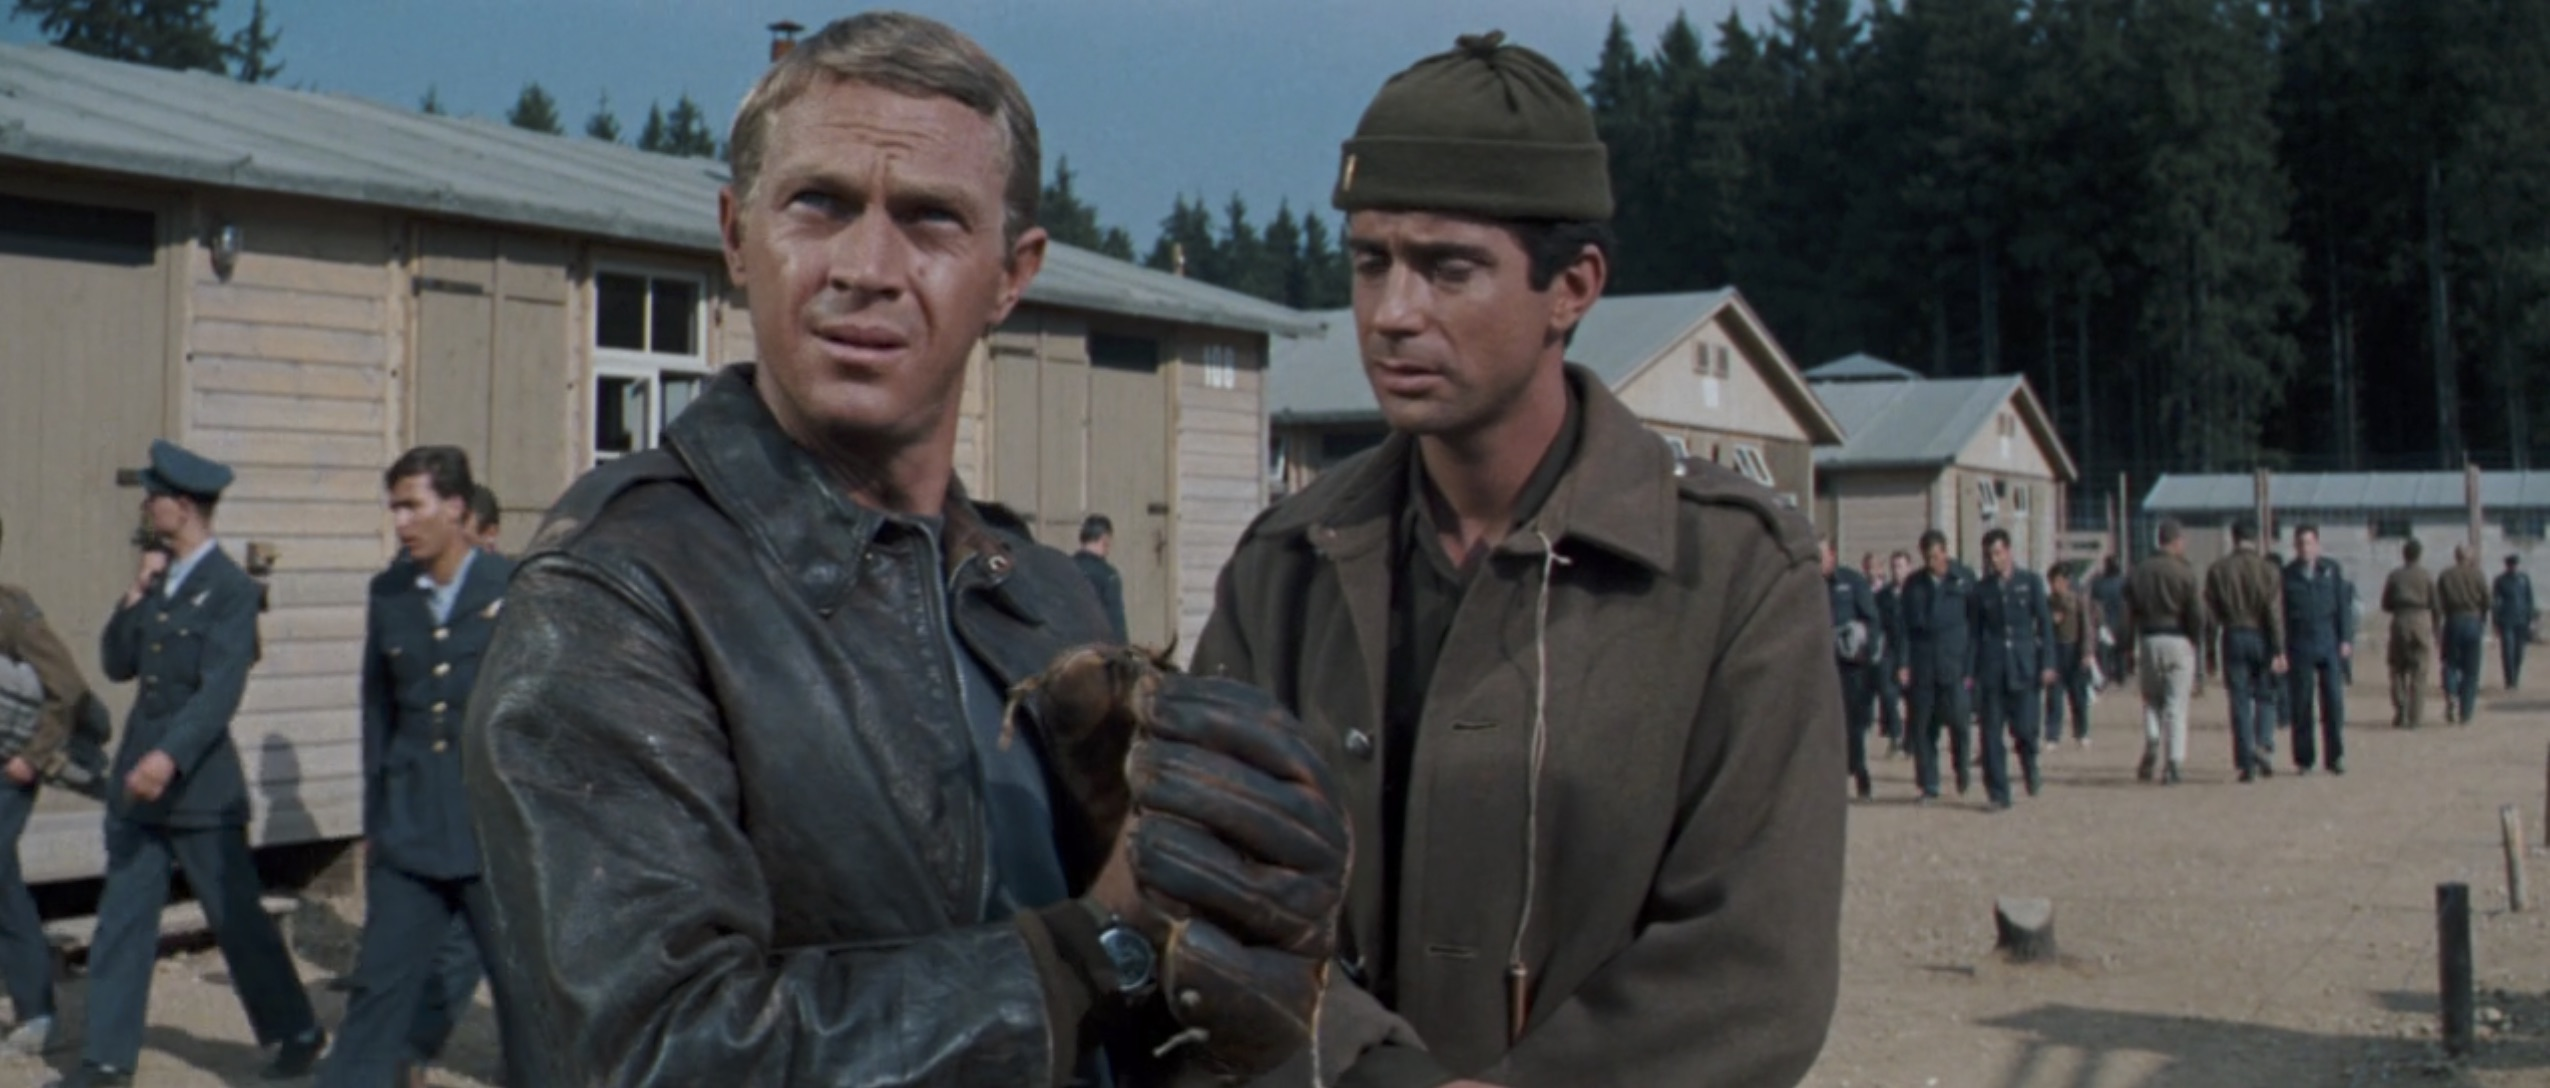 The Great Escape Steve mcqueen leather jacket